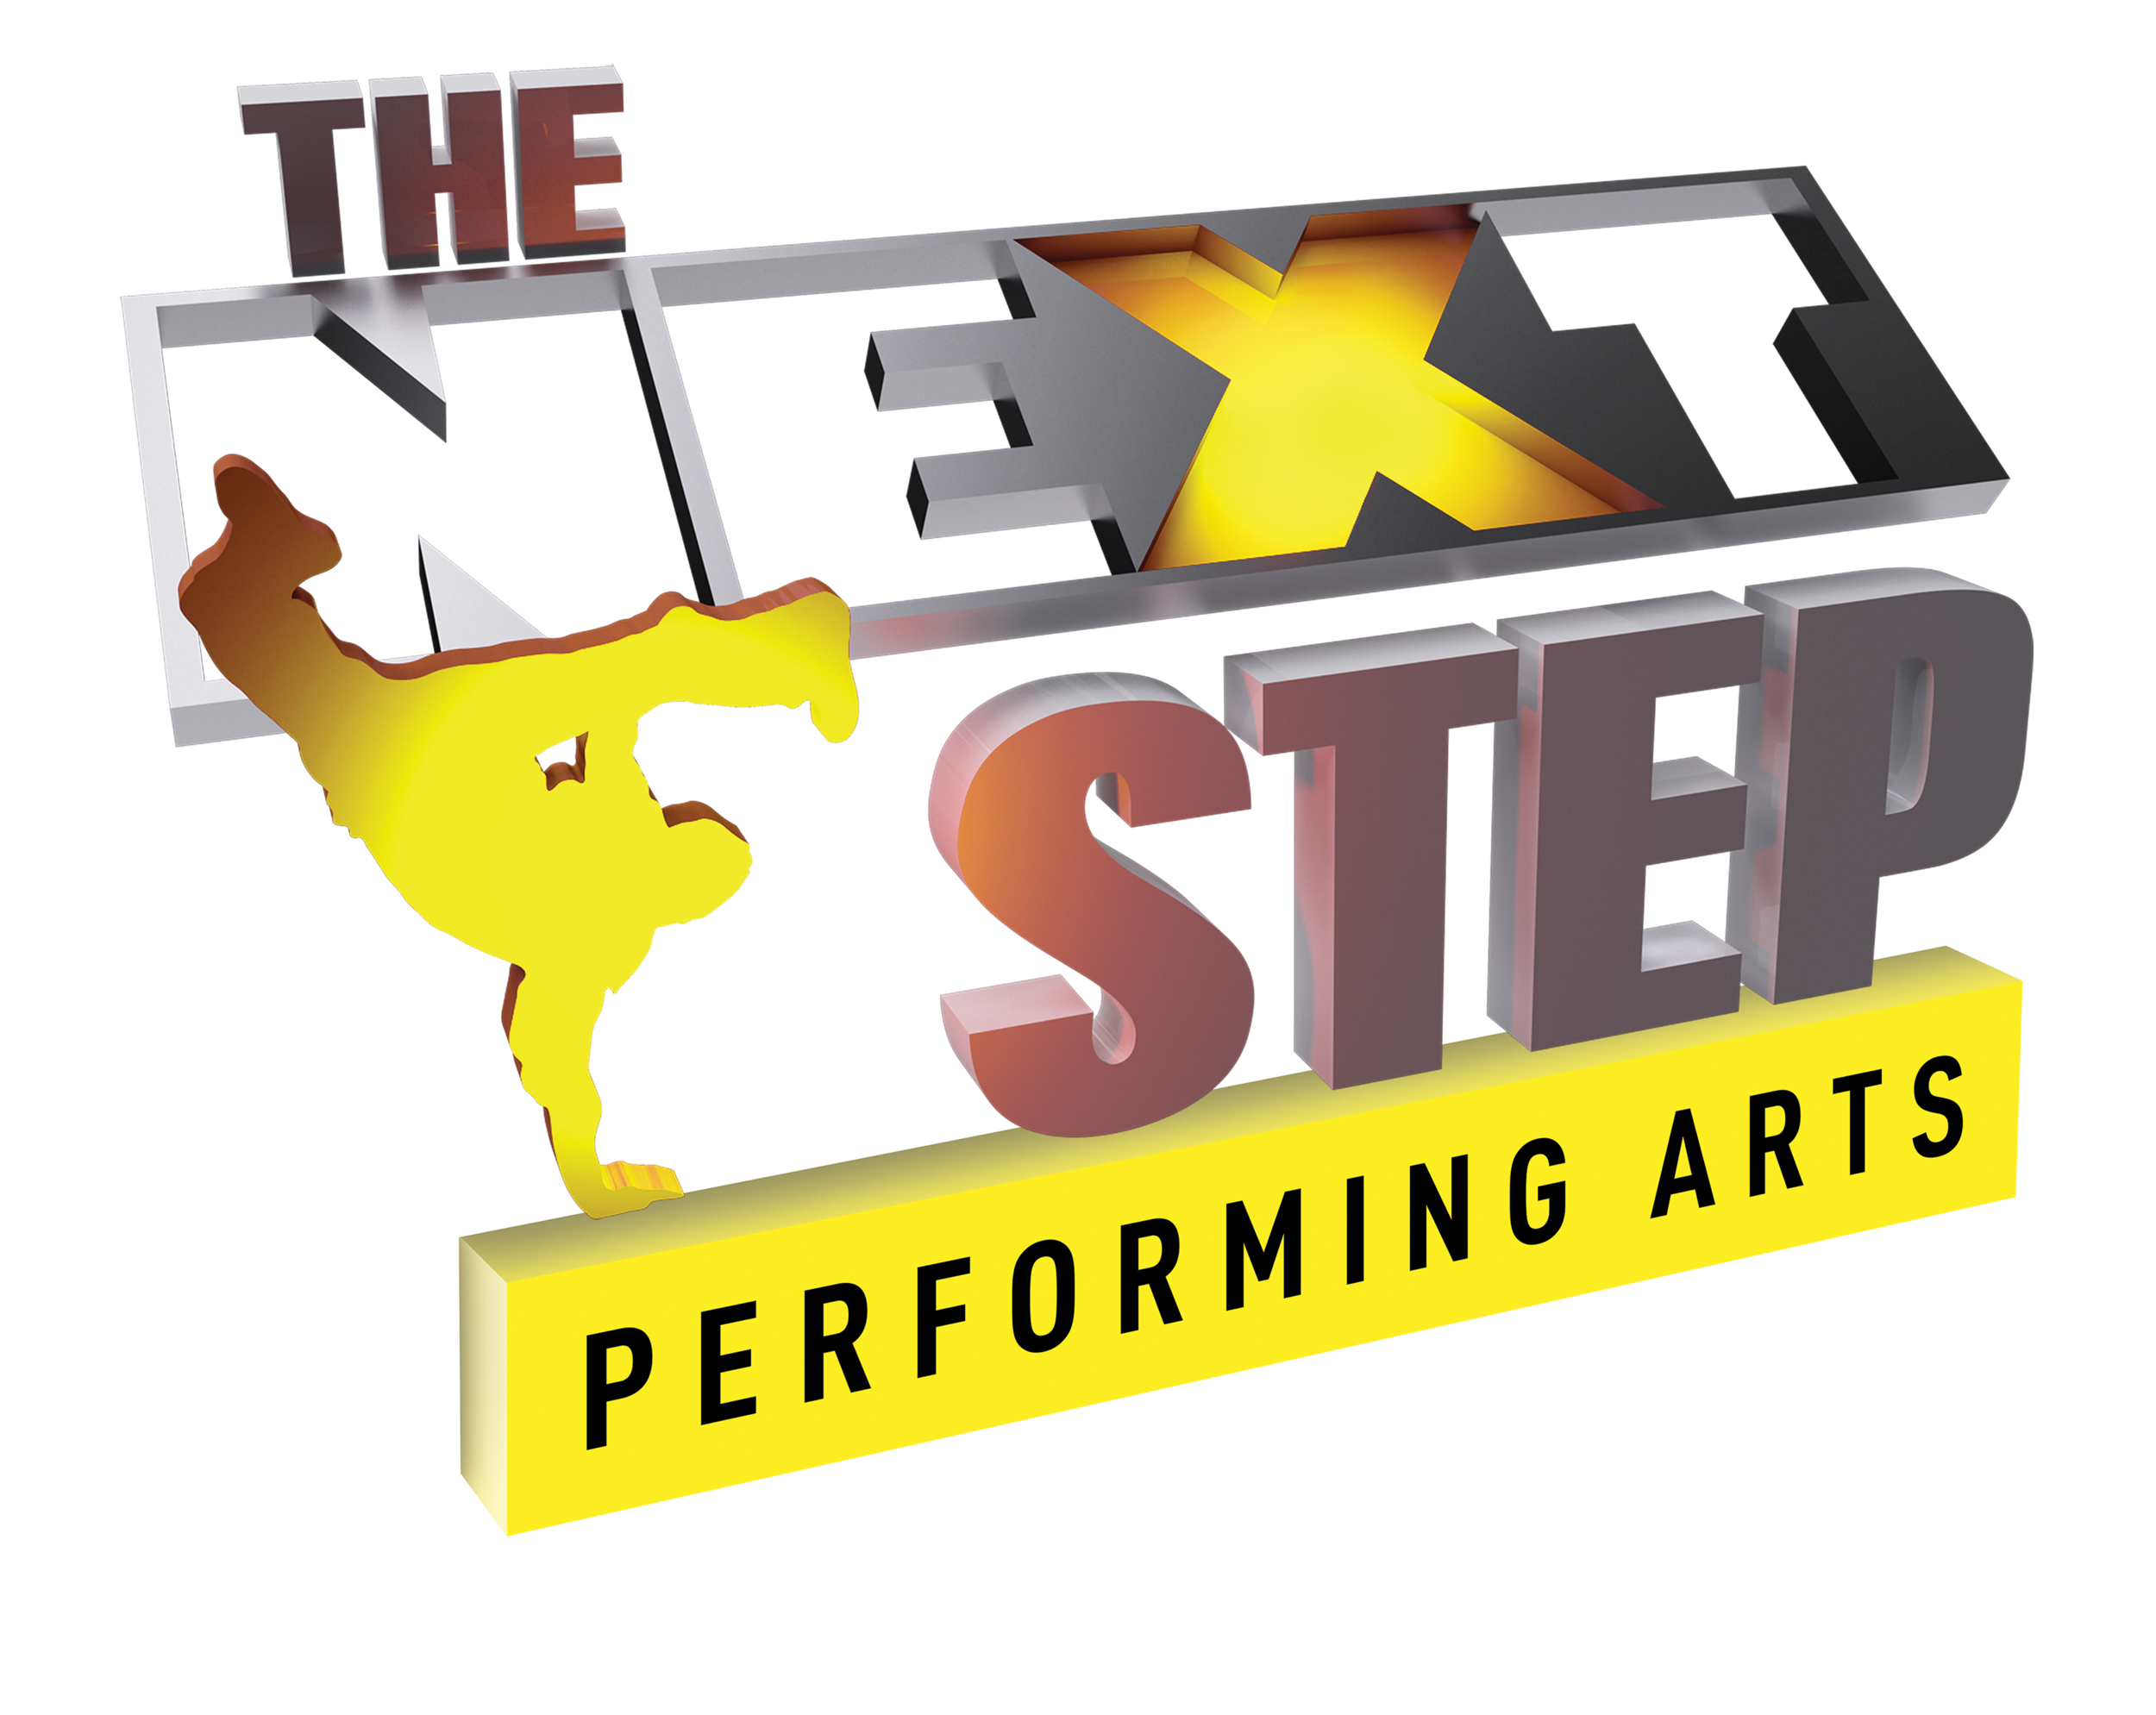 The Next Step Performing Arts - 15/17 Bibby St, Chiswick NSW 2046